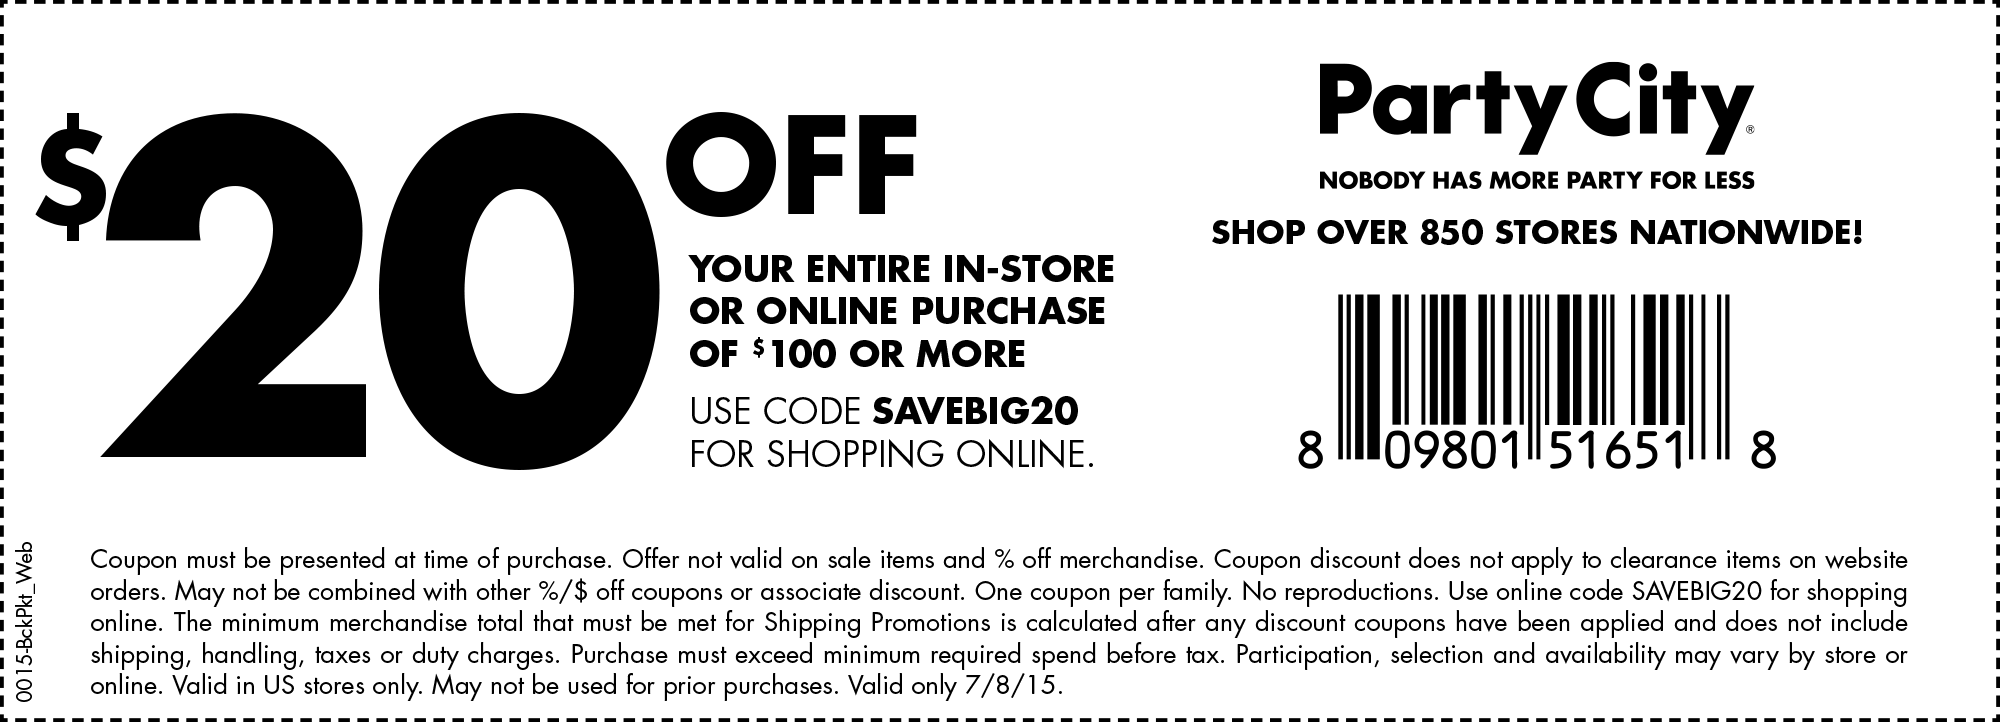 Party City Coupon June 2017 $20 off $100 today at Party City, or online via promo code SAVEBIG20